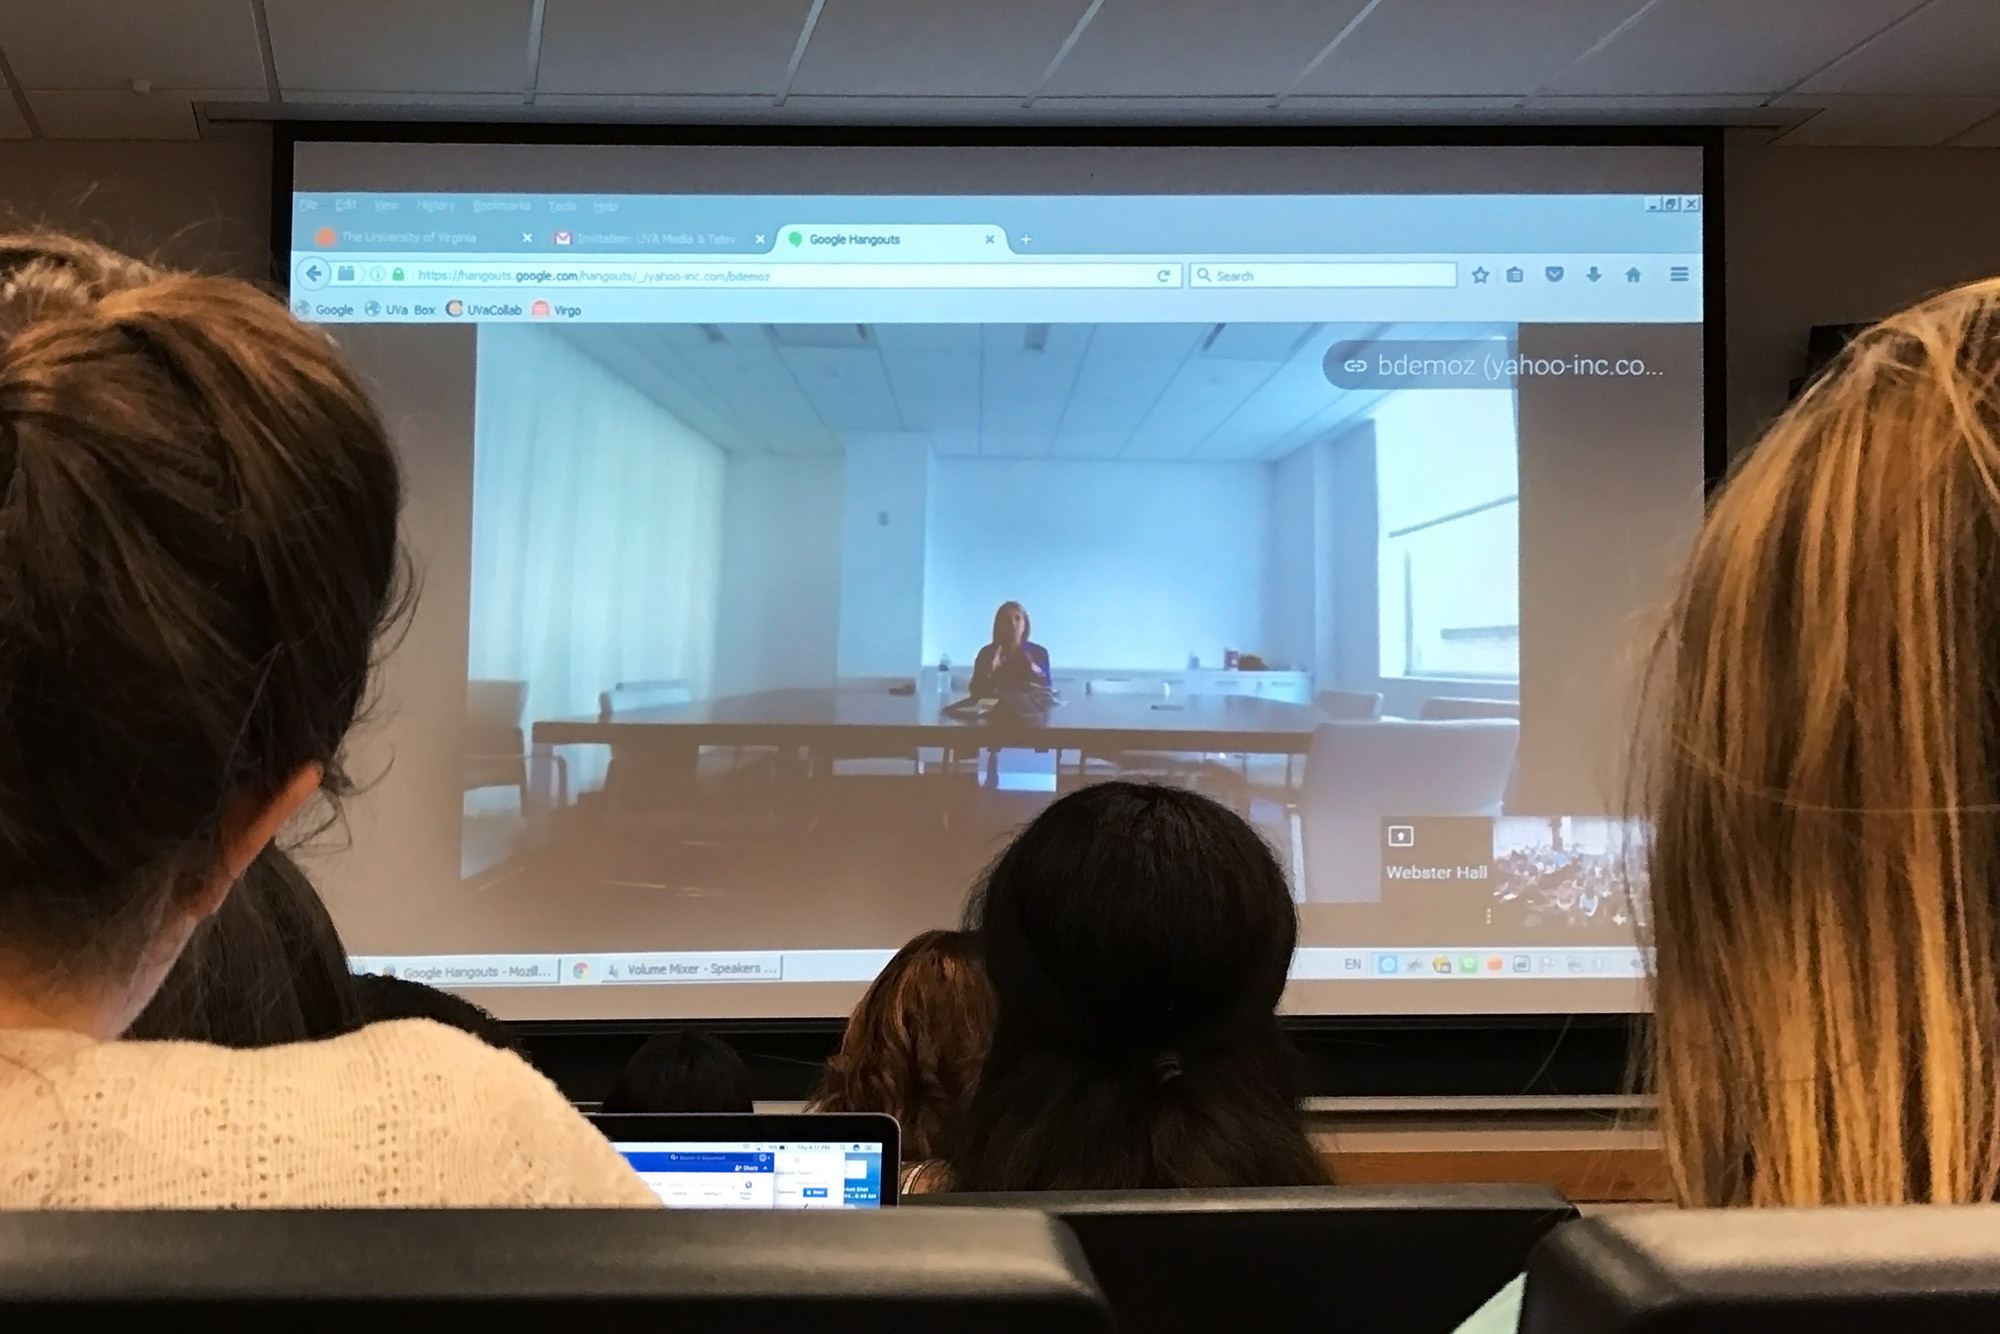 Couric, shown above during the class, spent an hour talking with students, many of them aspiring journalists and broadcasters.